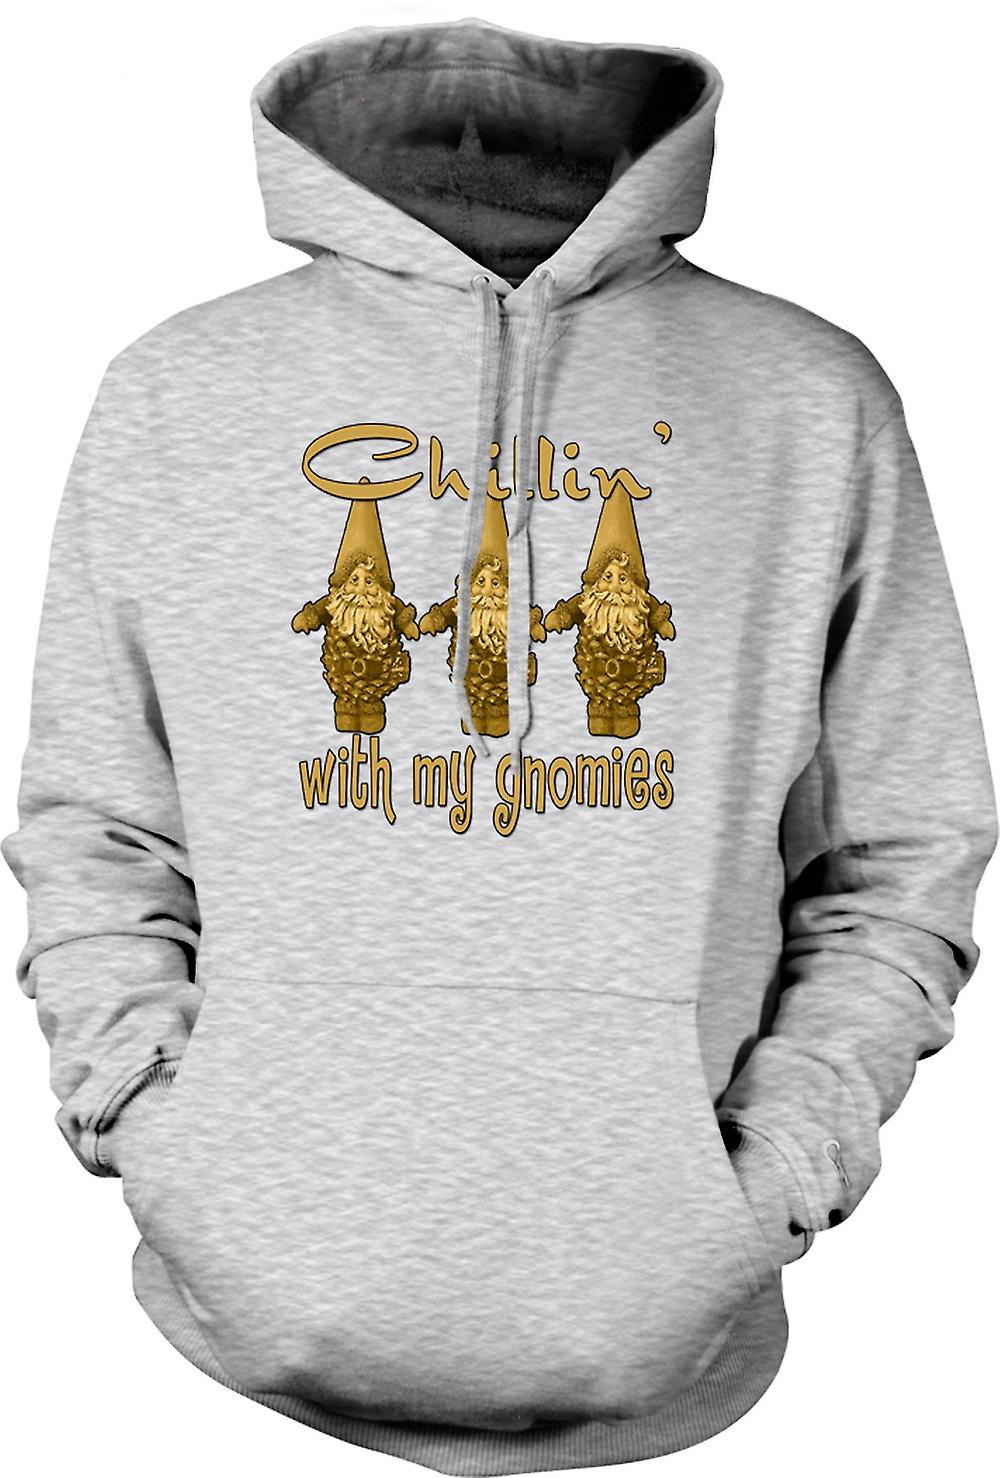 Mens Hoodie - Chillin With Gnomies - Funny